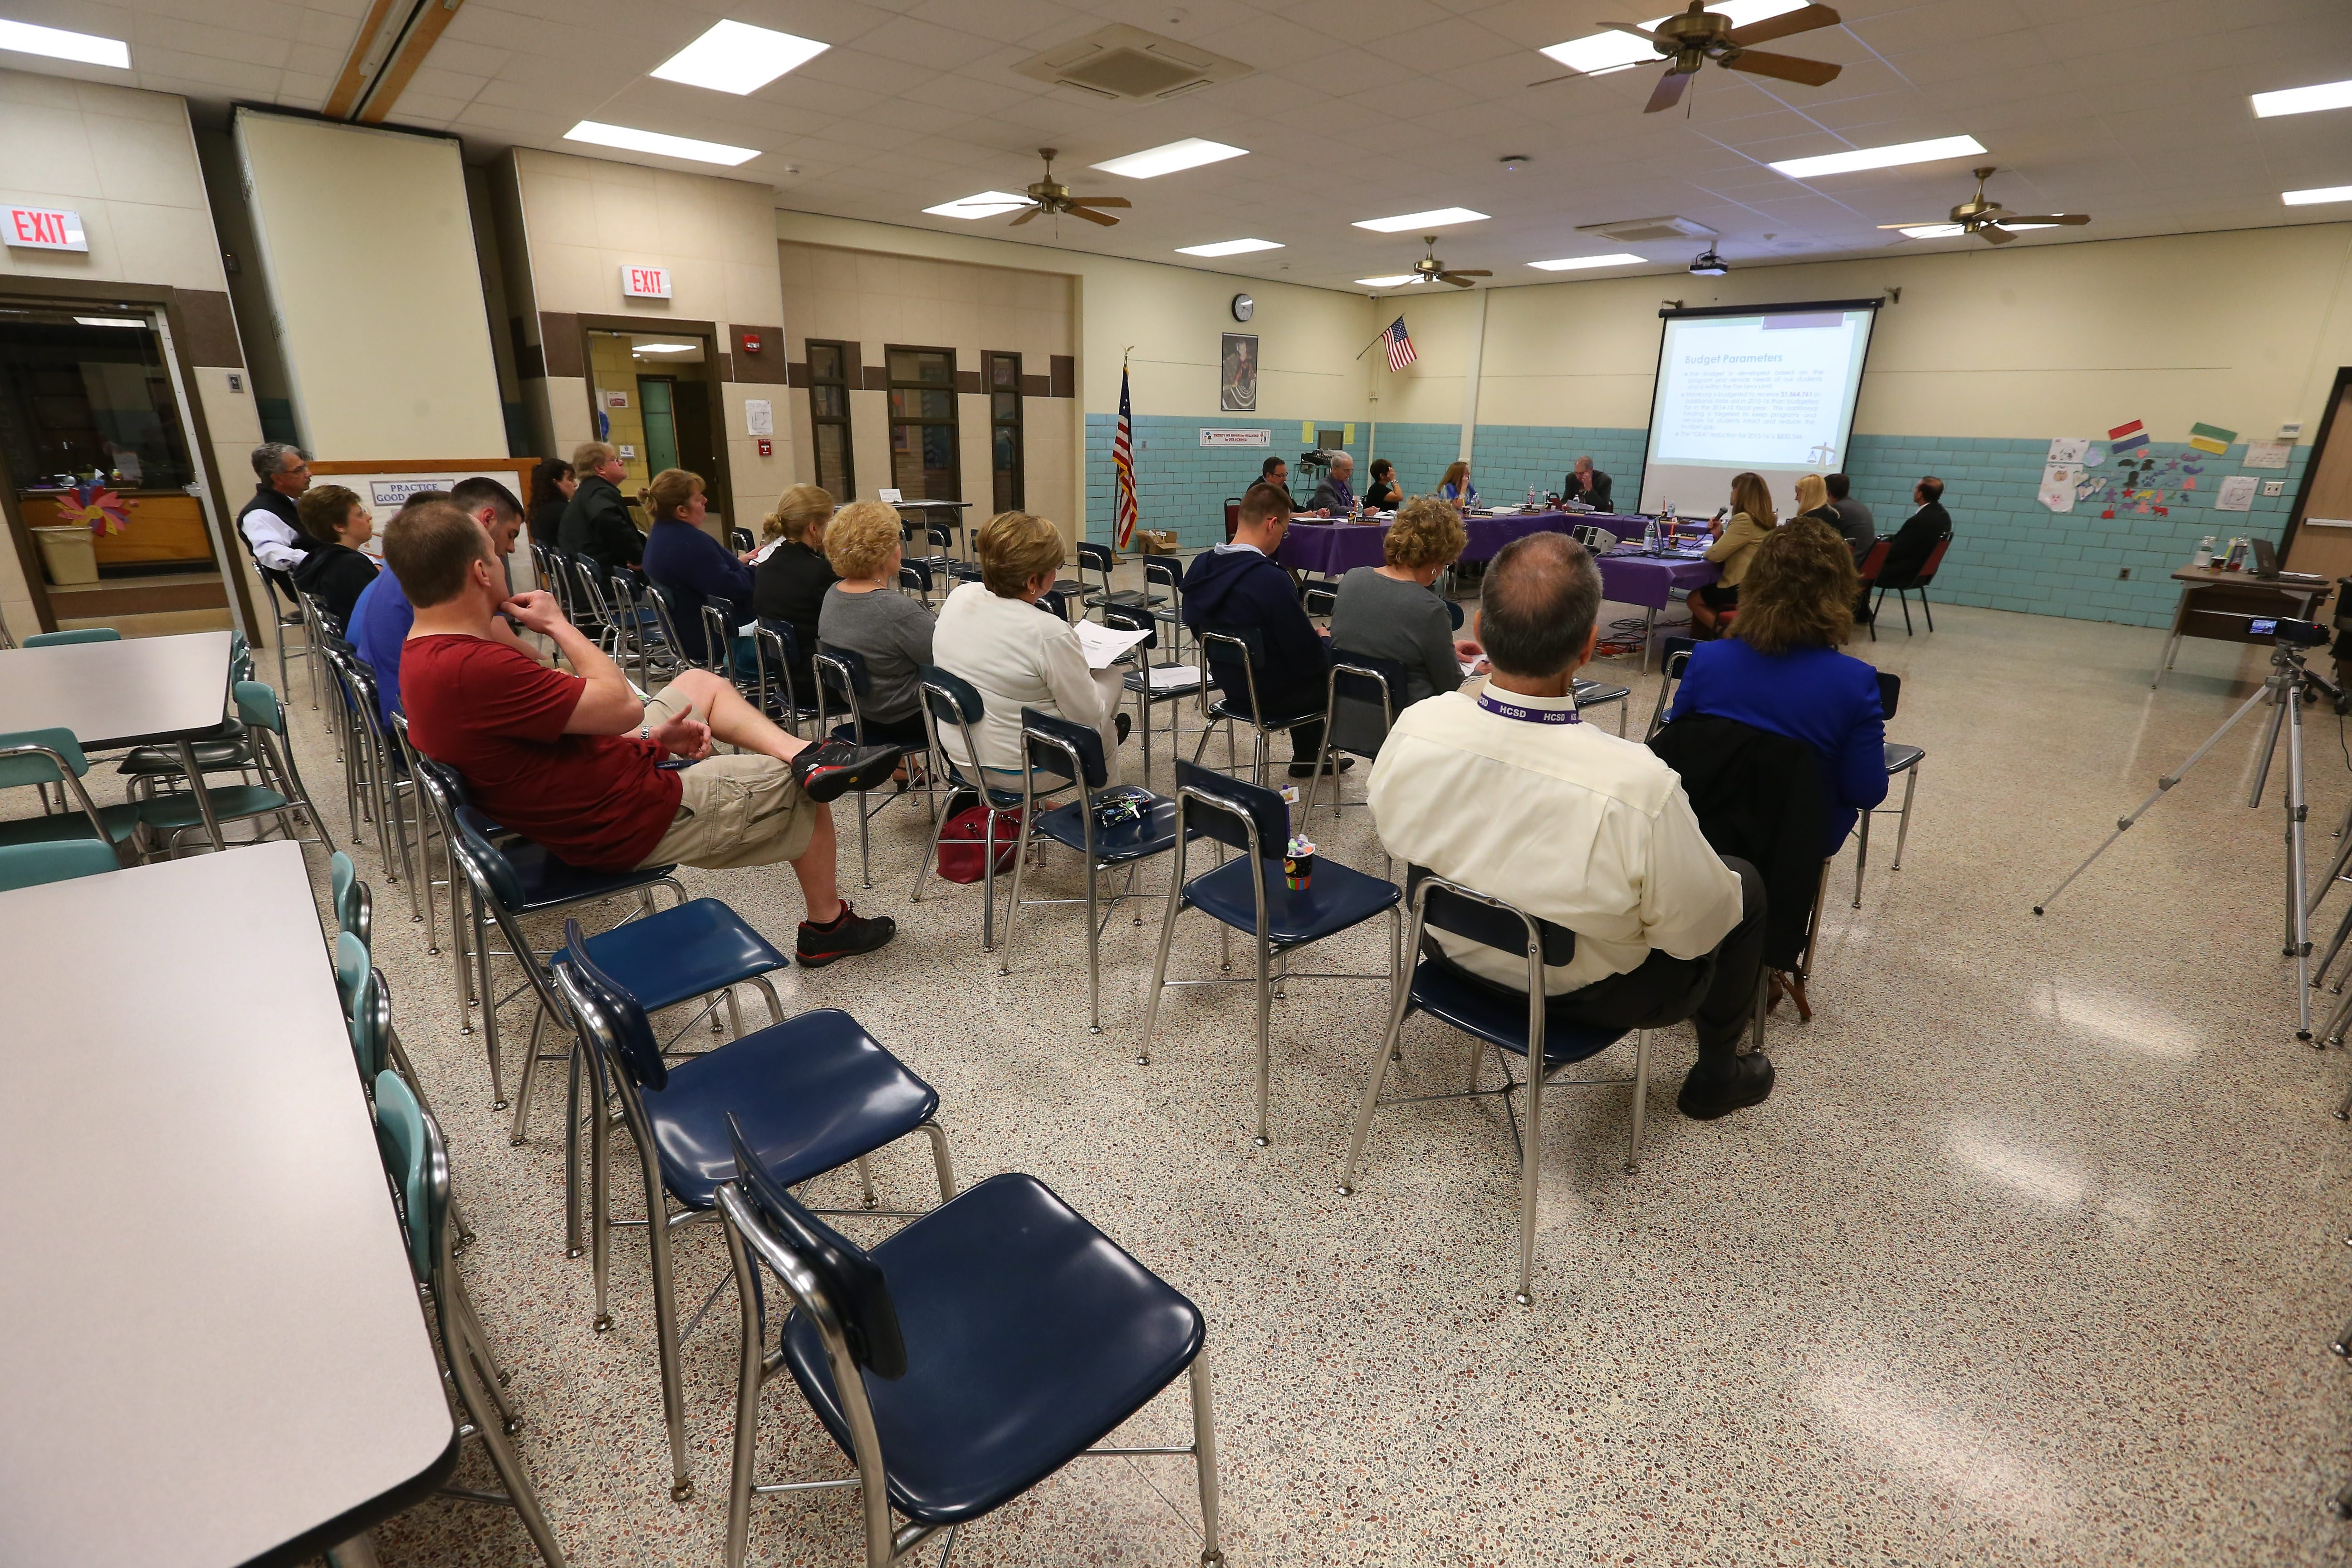 Calm has returned to Hamburg School Board meetings, as evidenced by the small turnout at a recent meeting.